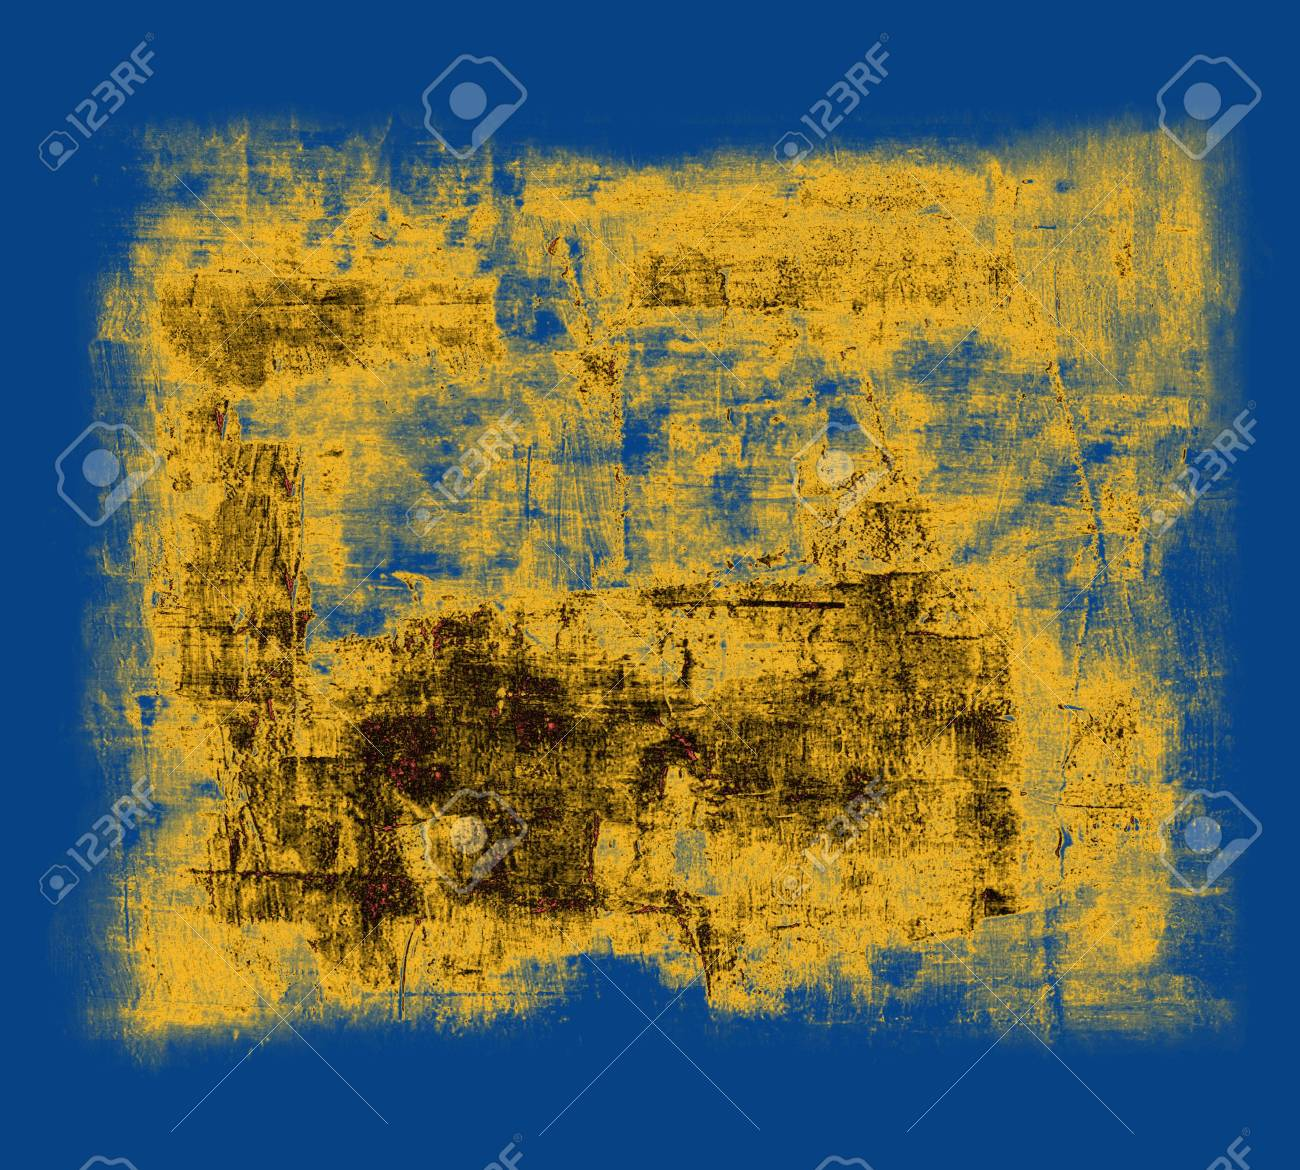 Abstract art texture background Stock Photo - 16001408